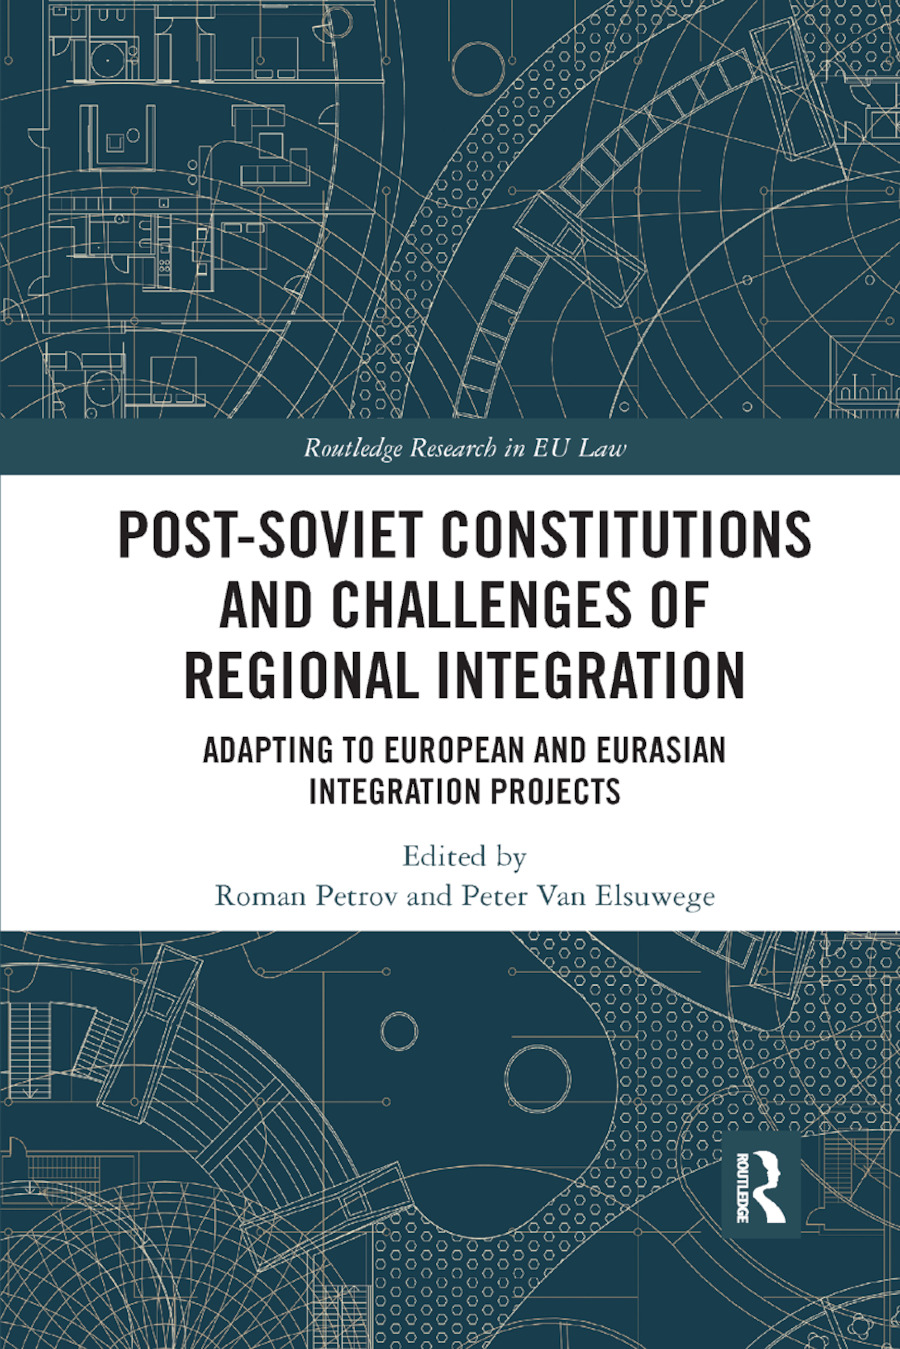 Post-Soviet Constitutions and Challenges of Regional Integration: Adapting to European and Eurasian integration projects book cover